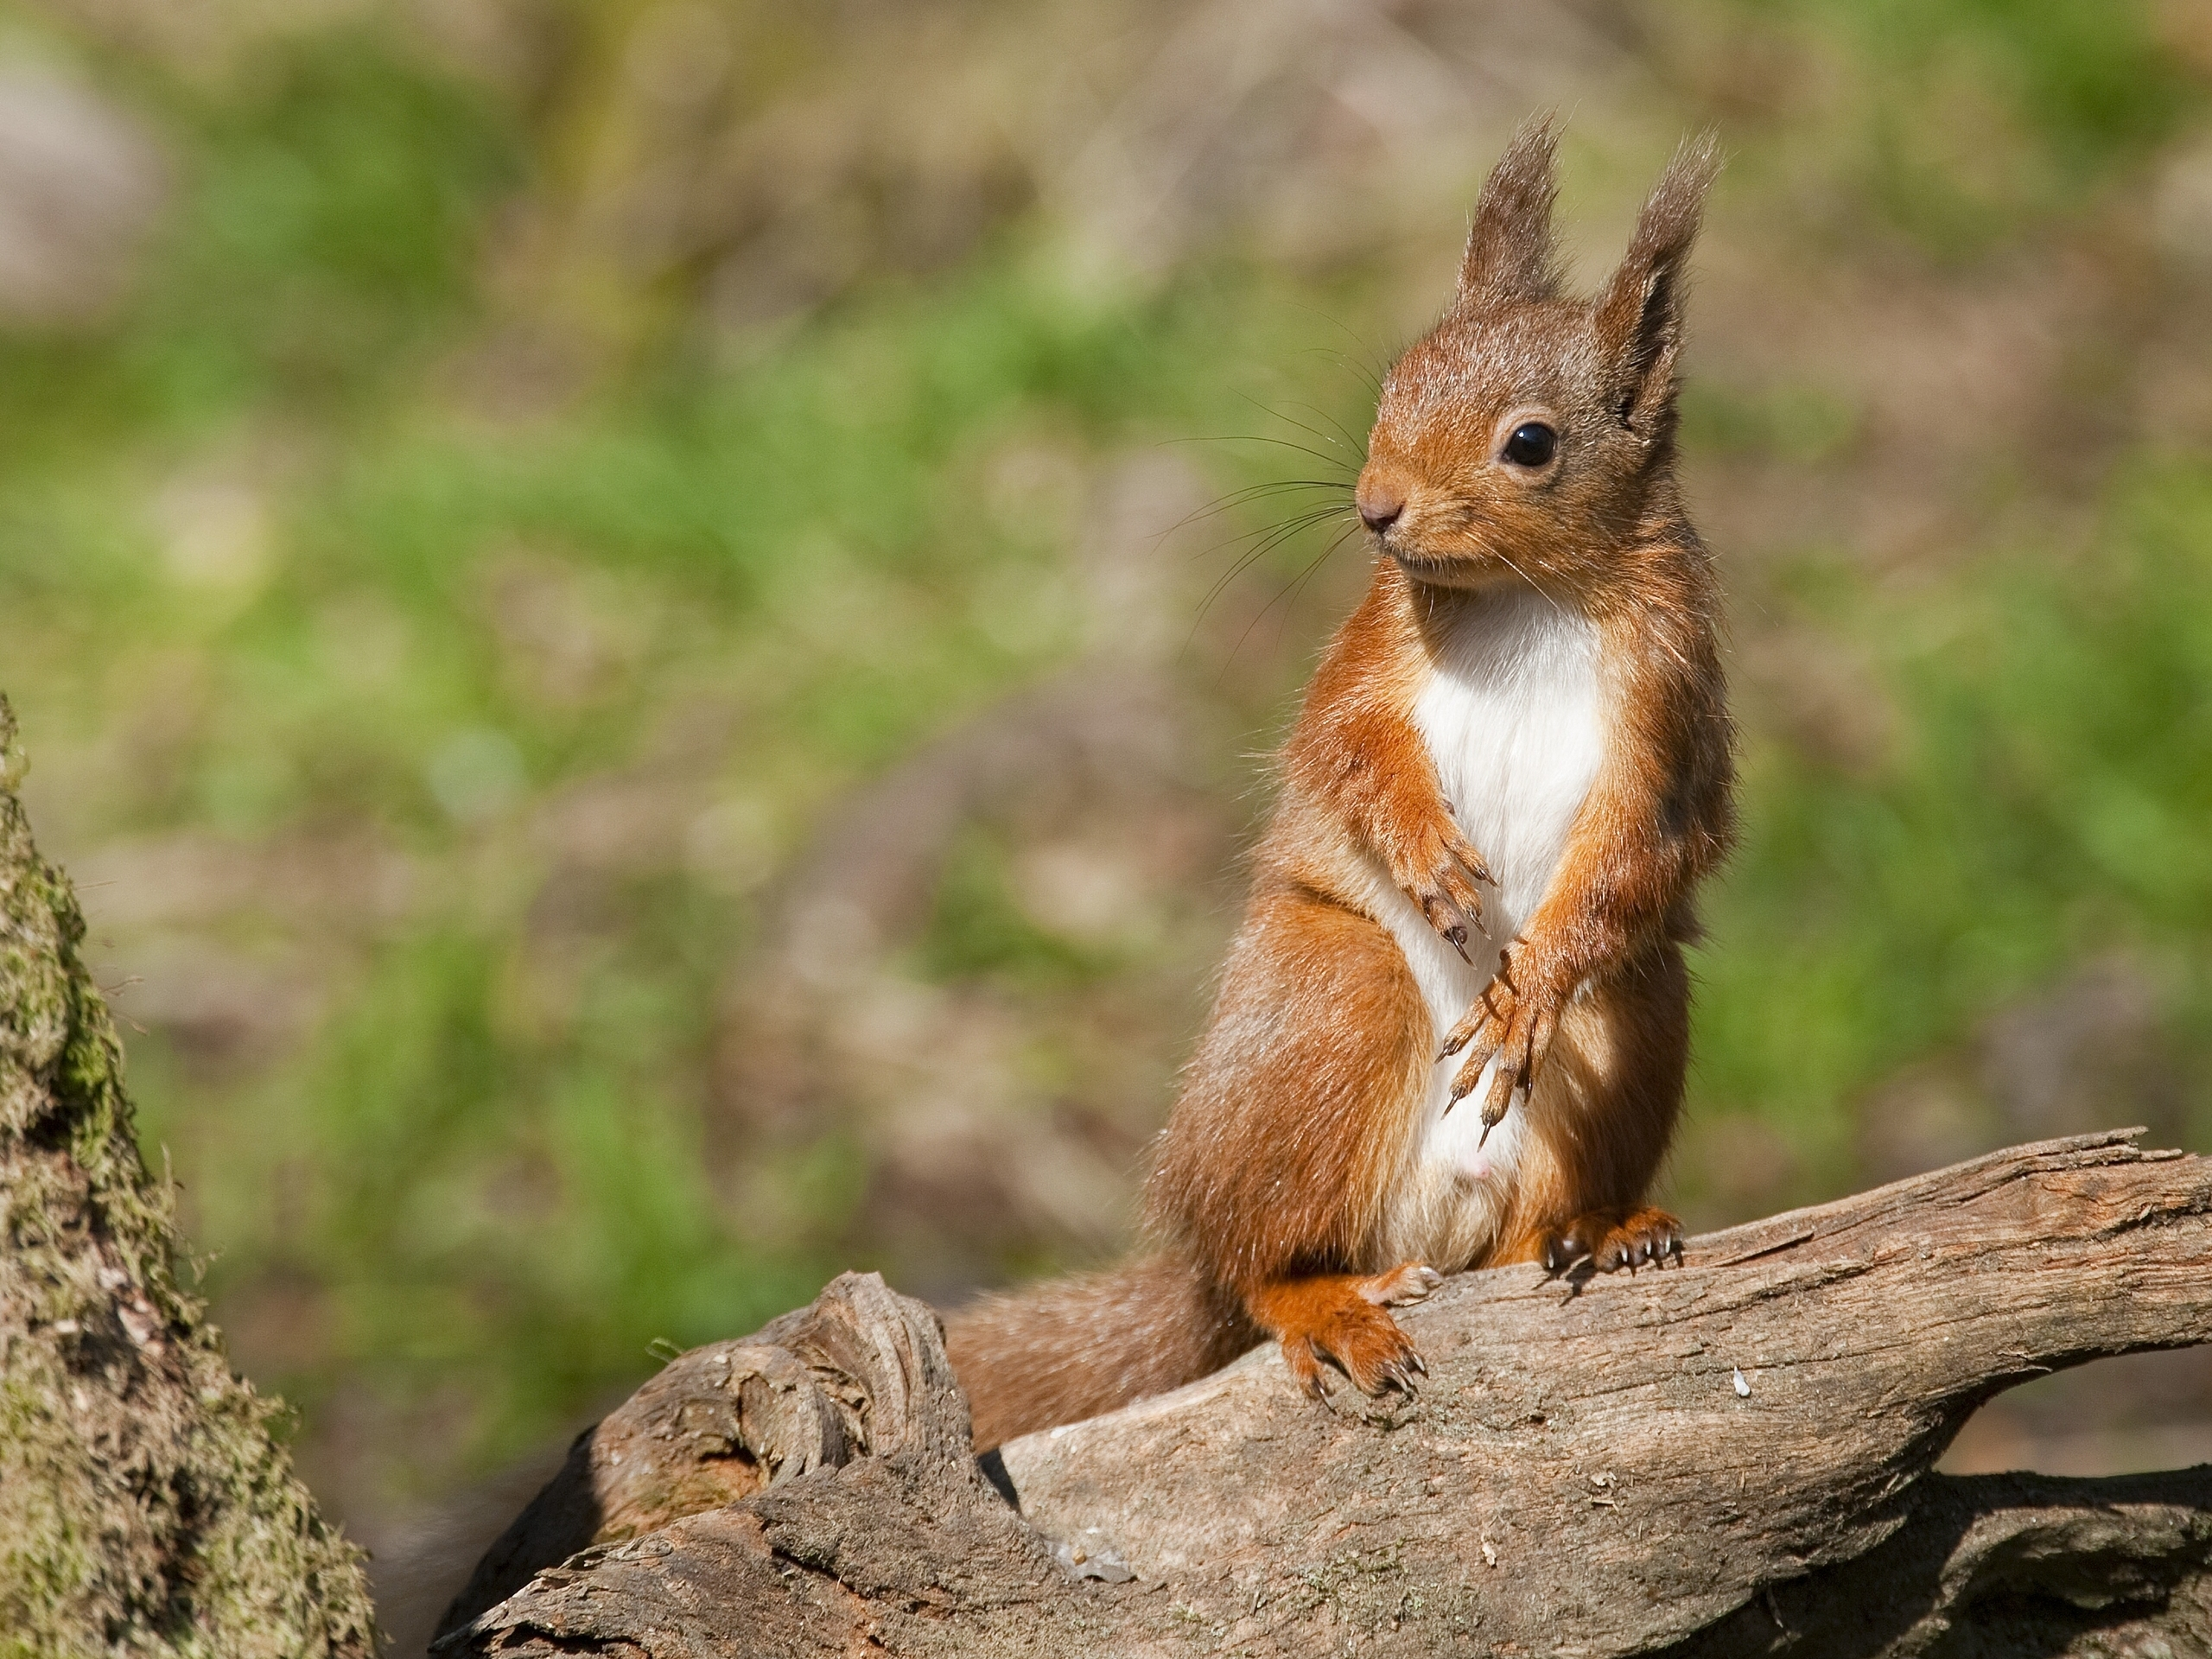 123404 Screensavers and Wallpapers Squirrel for phone. Download Animals, Squirrel, Animal, Paws, Log pictures for free